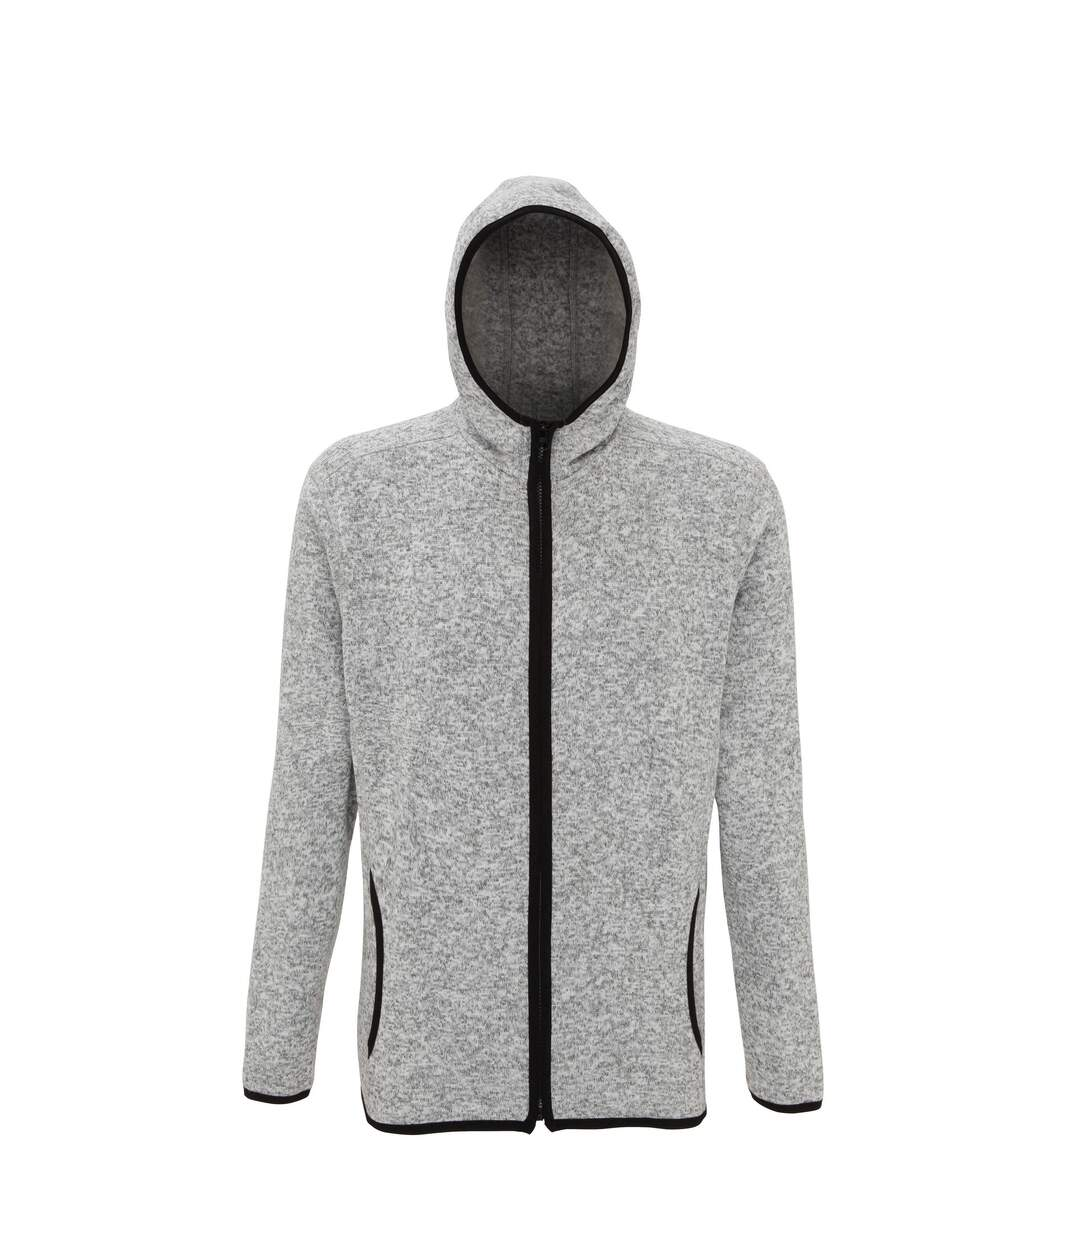 Tri Dri Mens Melange Knit Fleece Jacket (Heather Grey/Black Fleck) - UTRW5459